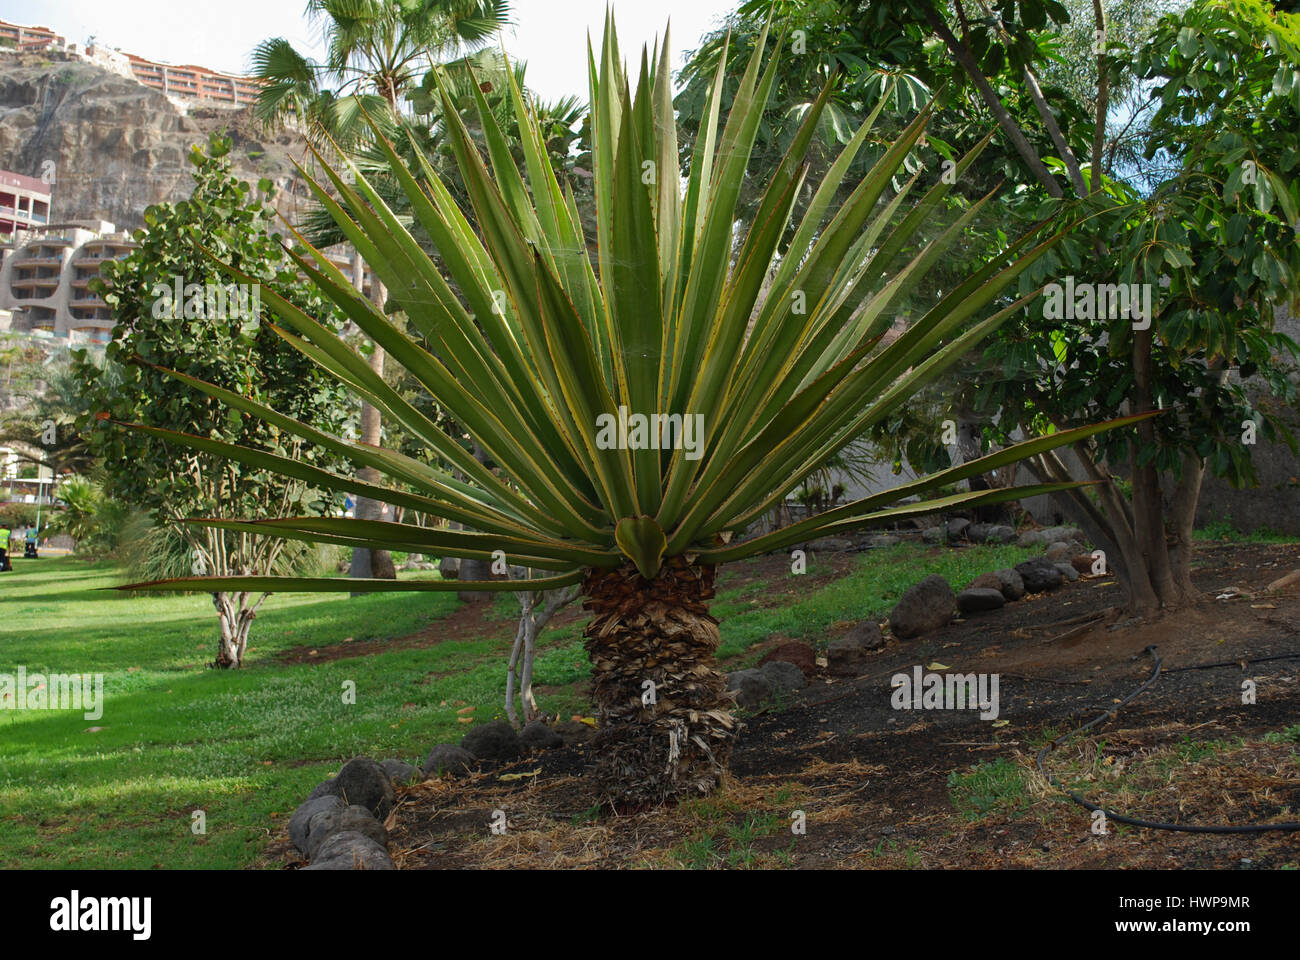 Mojave Yucca (Yucca shidigera) palm in the flowerbed. - Stock Image